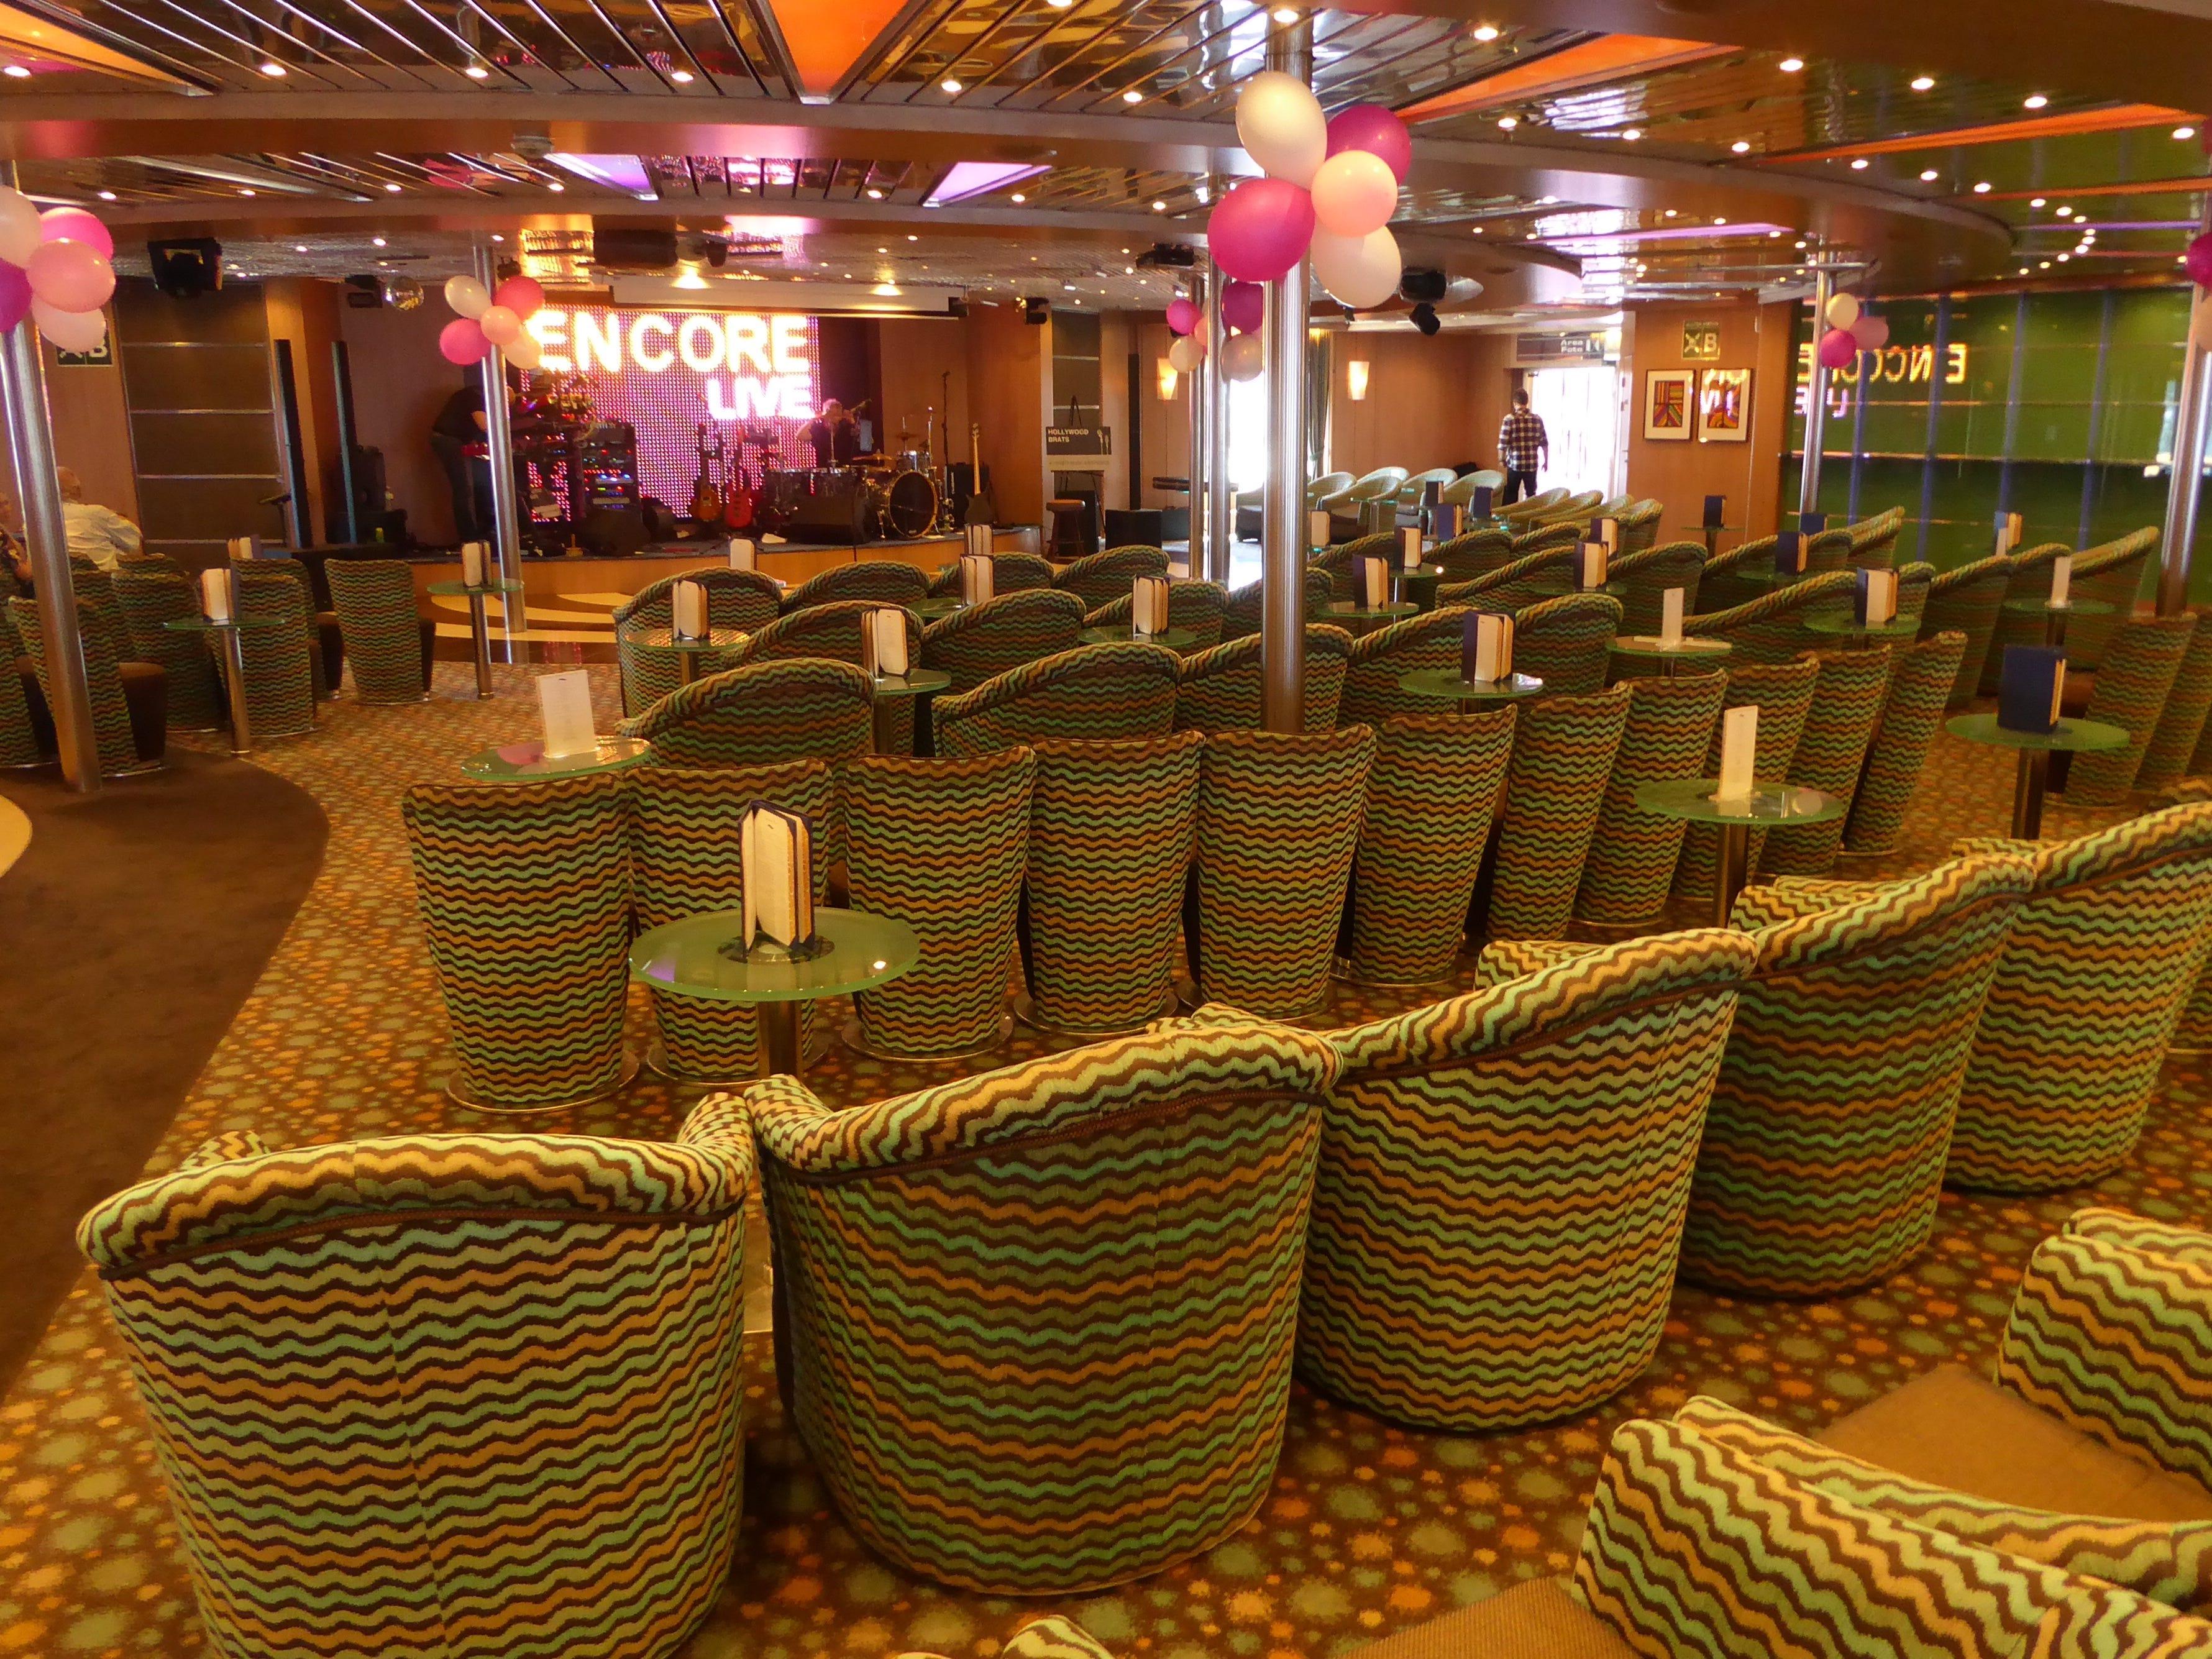 The Encore is used for movie screenings and live entertainment, including talented cover bands.